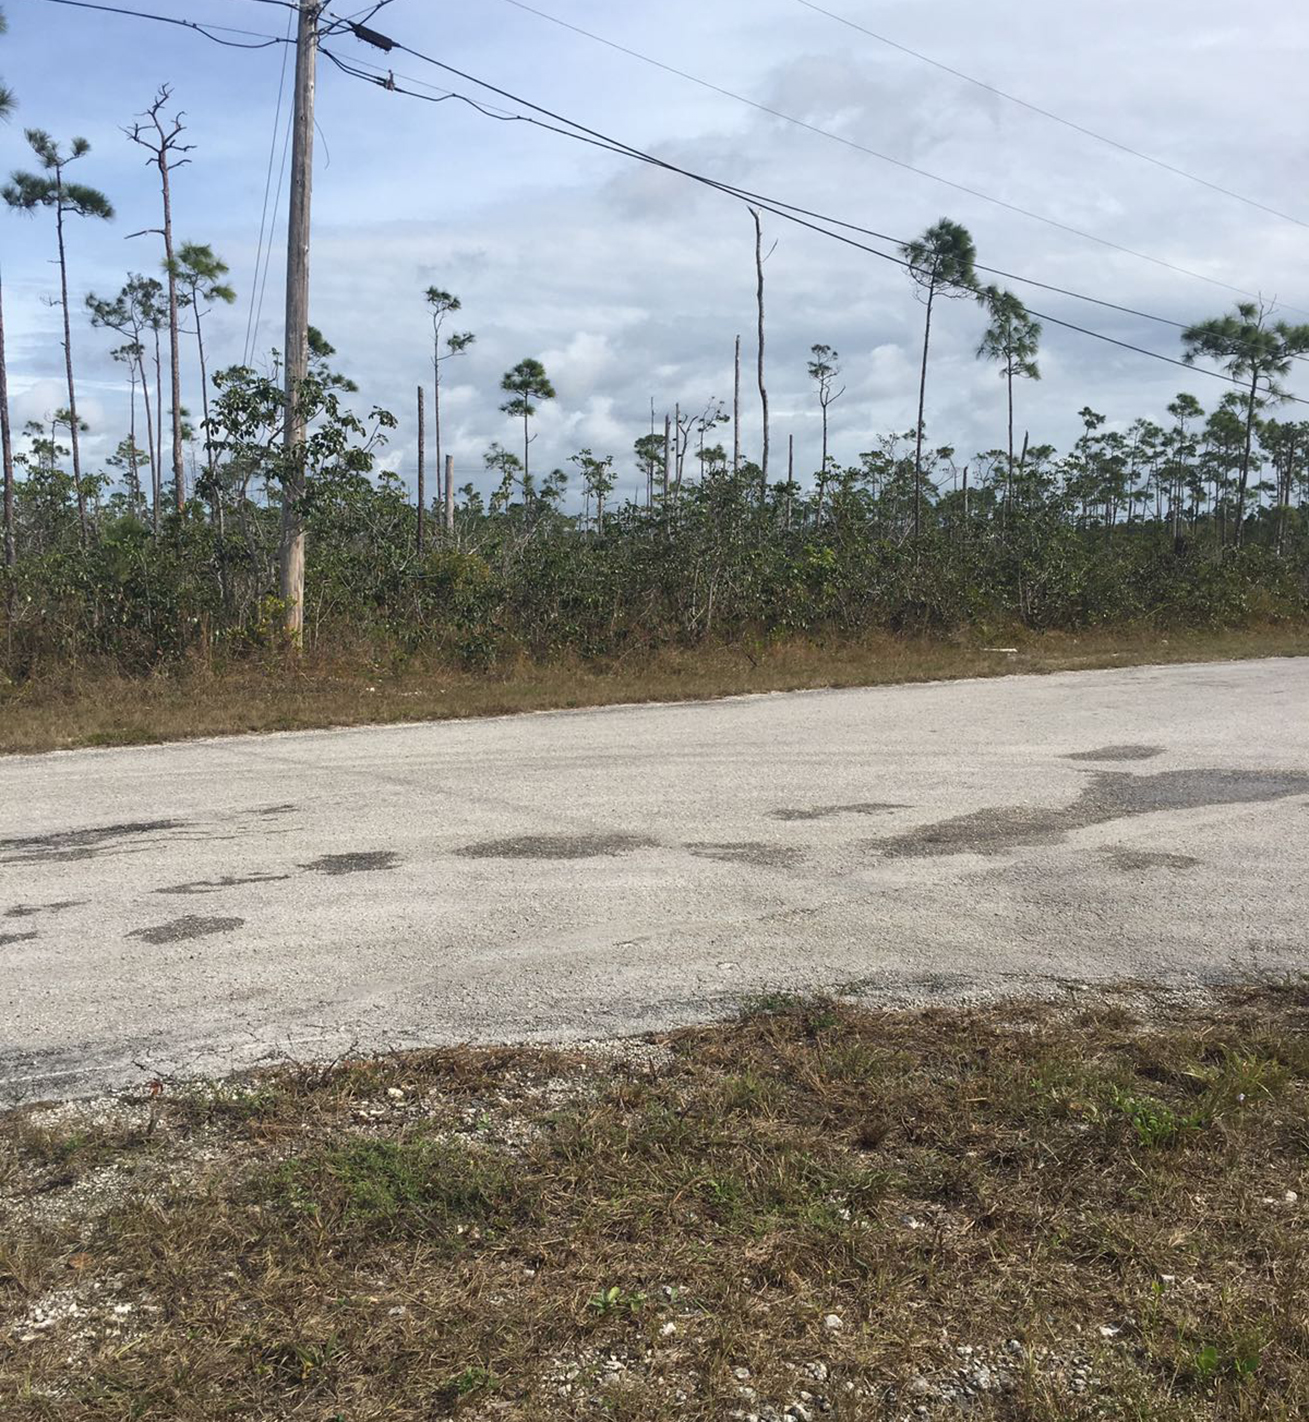 Land for Sale at Nicely Priced Duplex Lot in Lincoln Green - MLS 32234 Lincoln Green, Grand Bahama, Bahamas